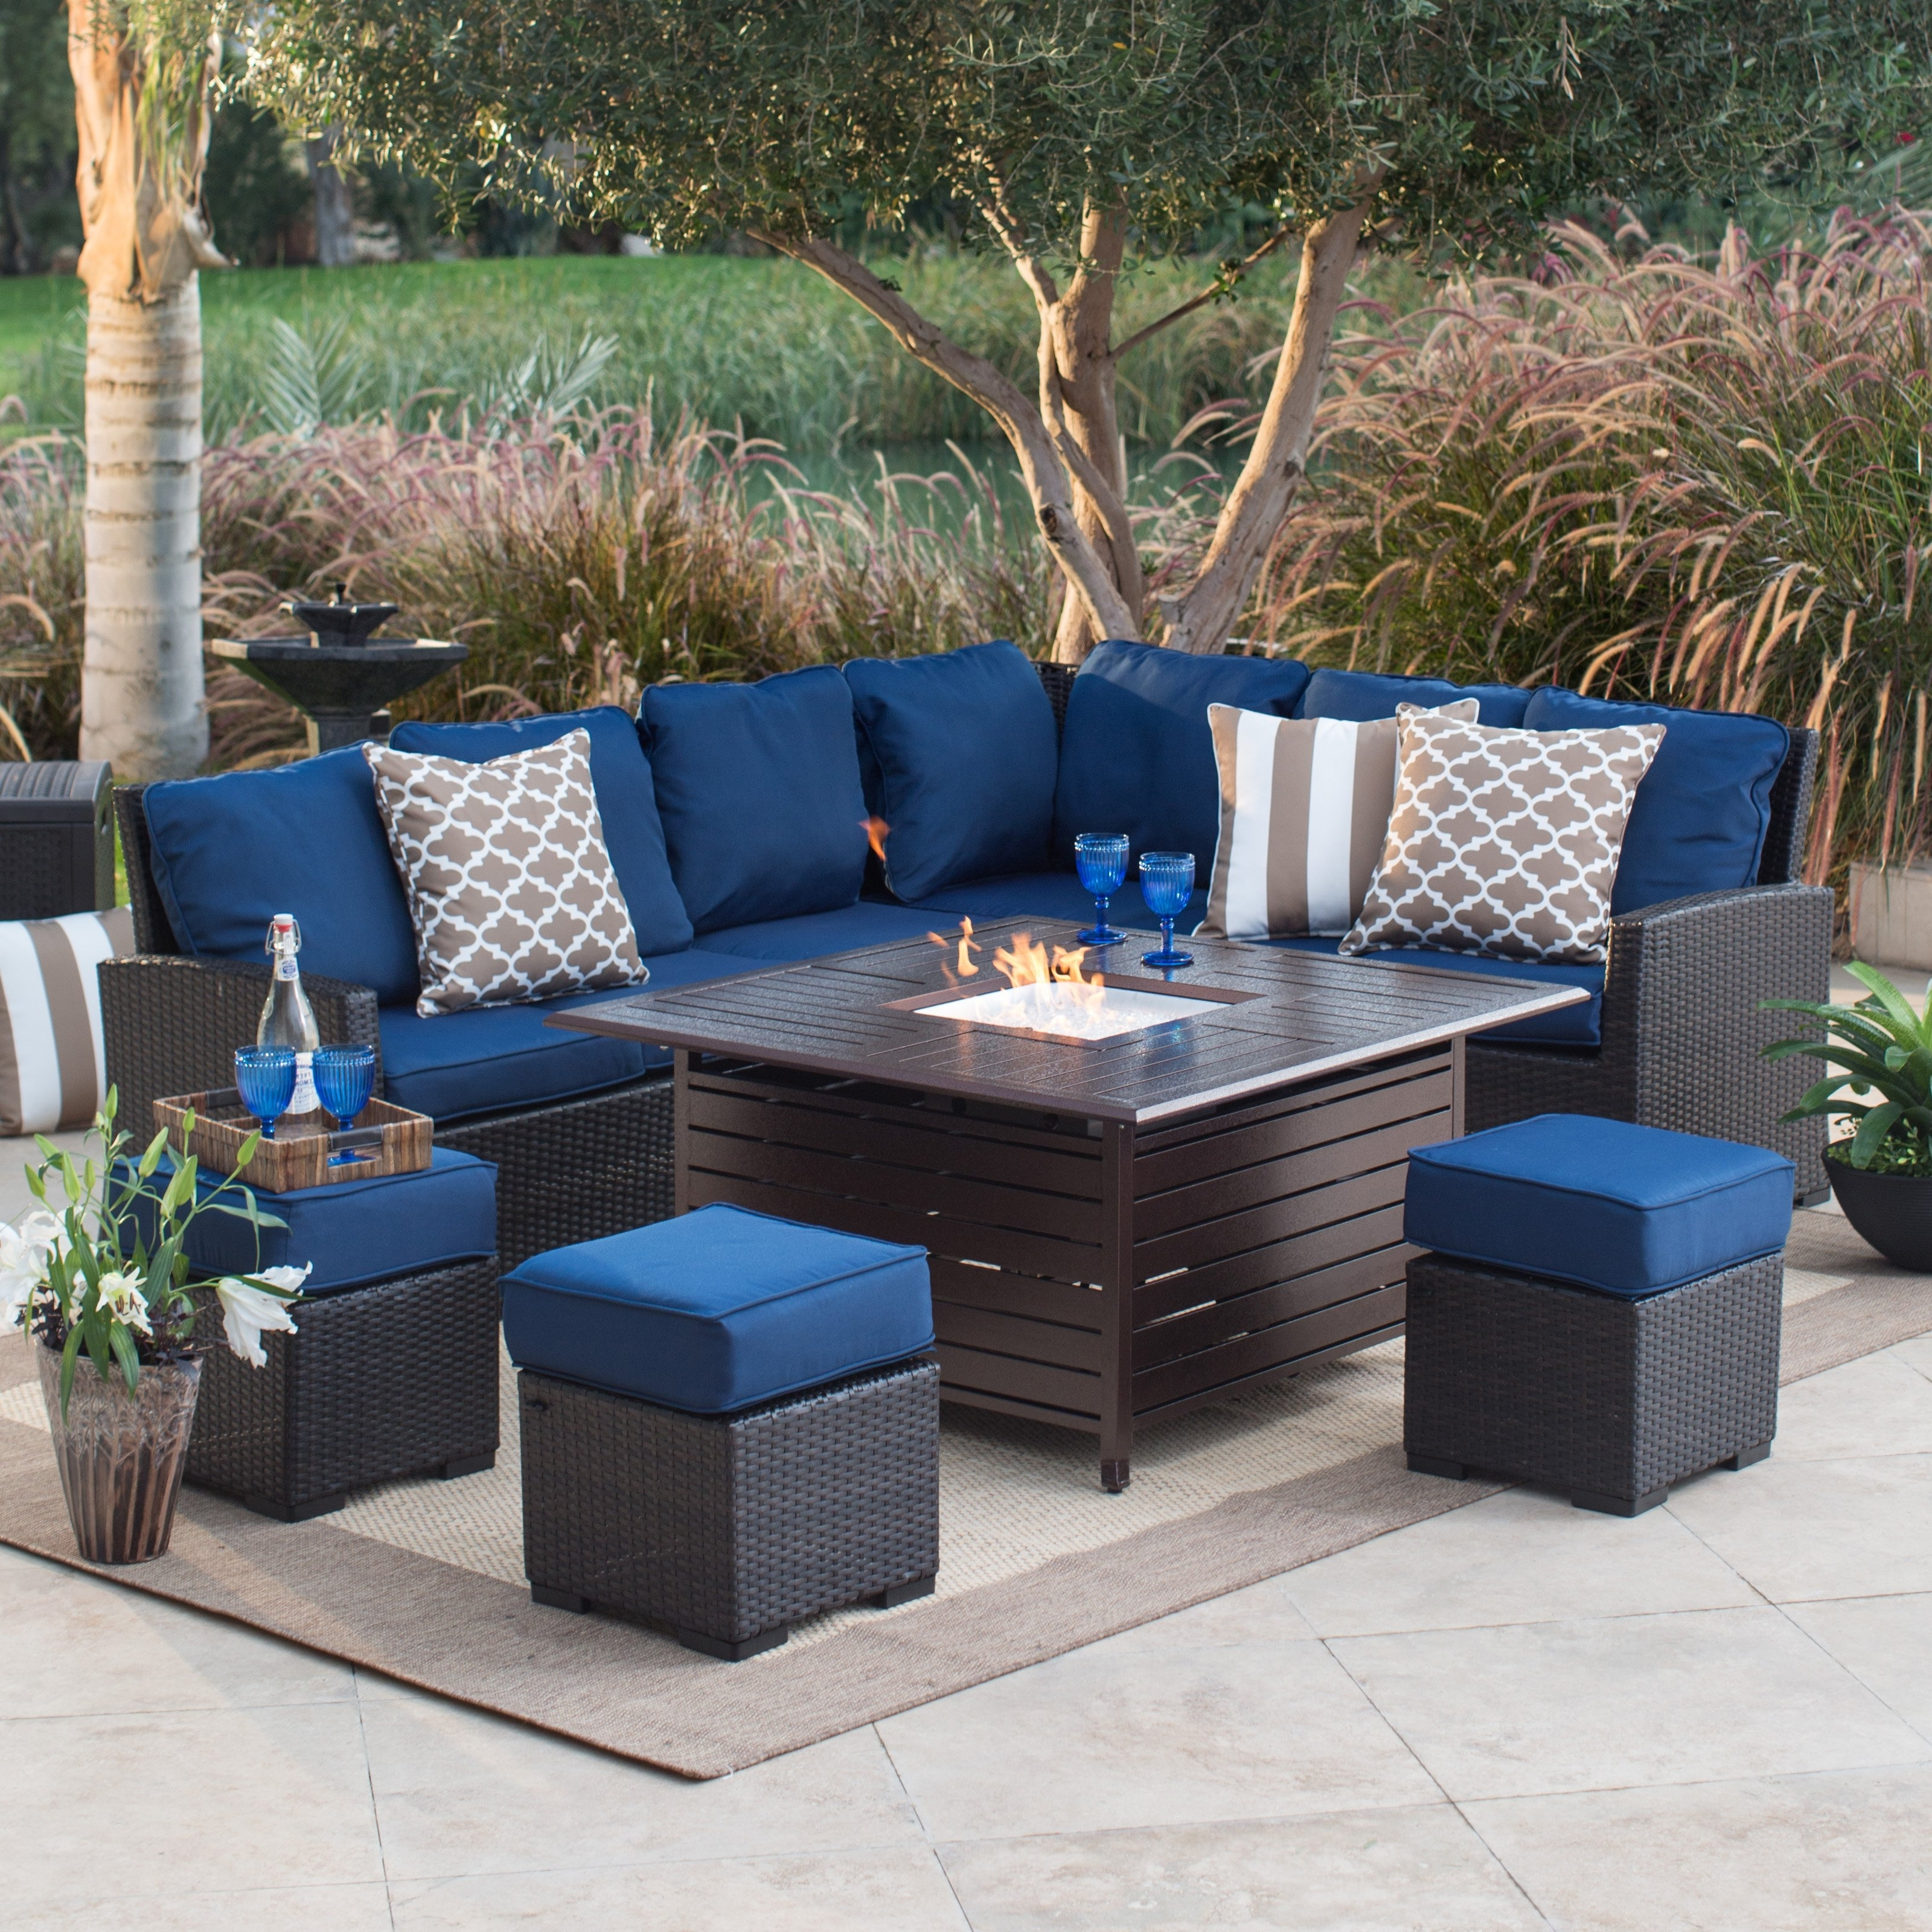 Patio Conversation Sets With Gas Fire Pit Throughout Fashionable Fire Pit Set Clearance Patio Conversation Sets With Swivel Chairs (View 13 of 20)